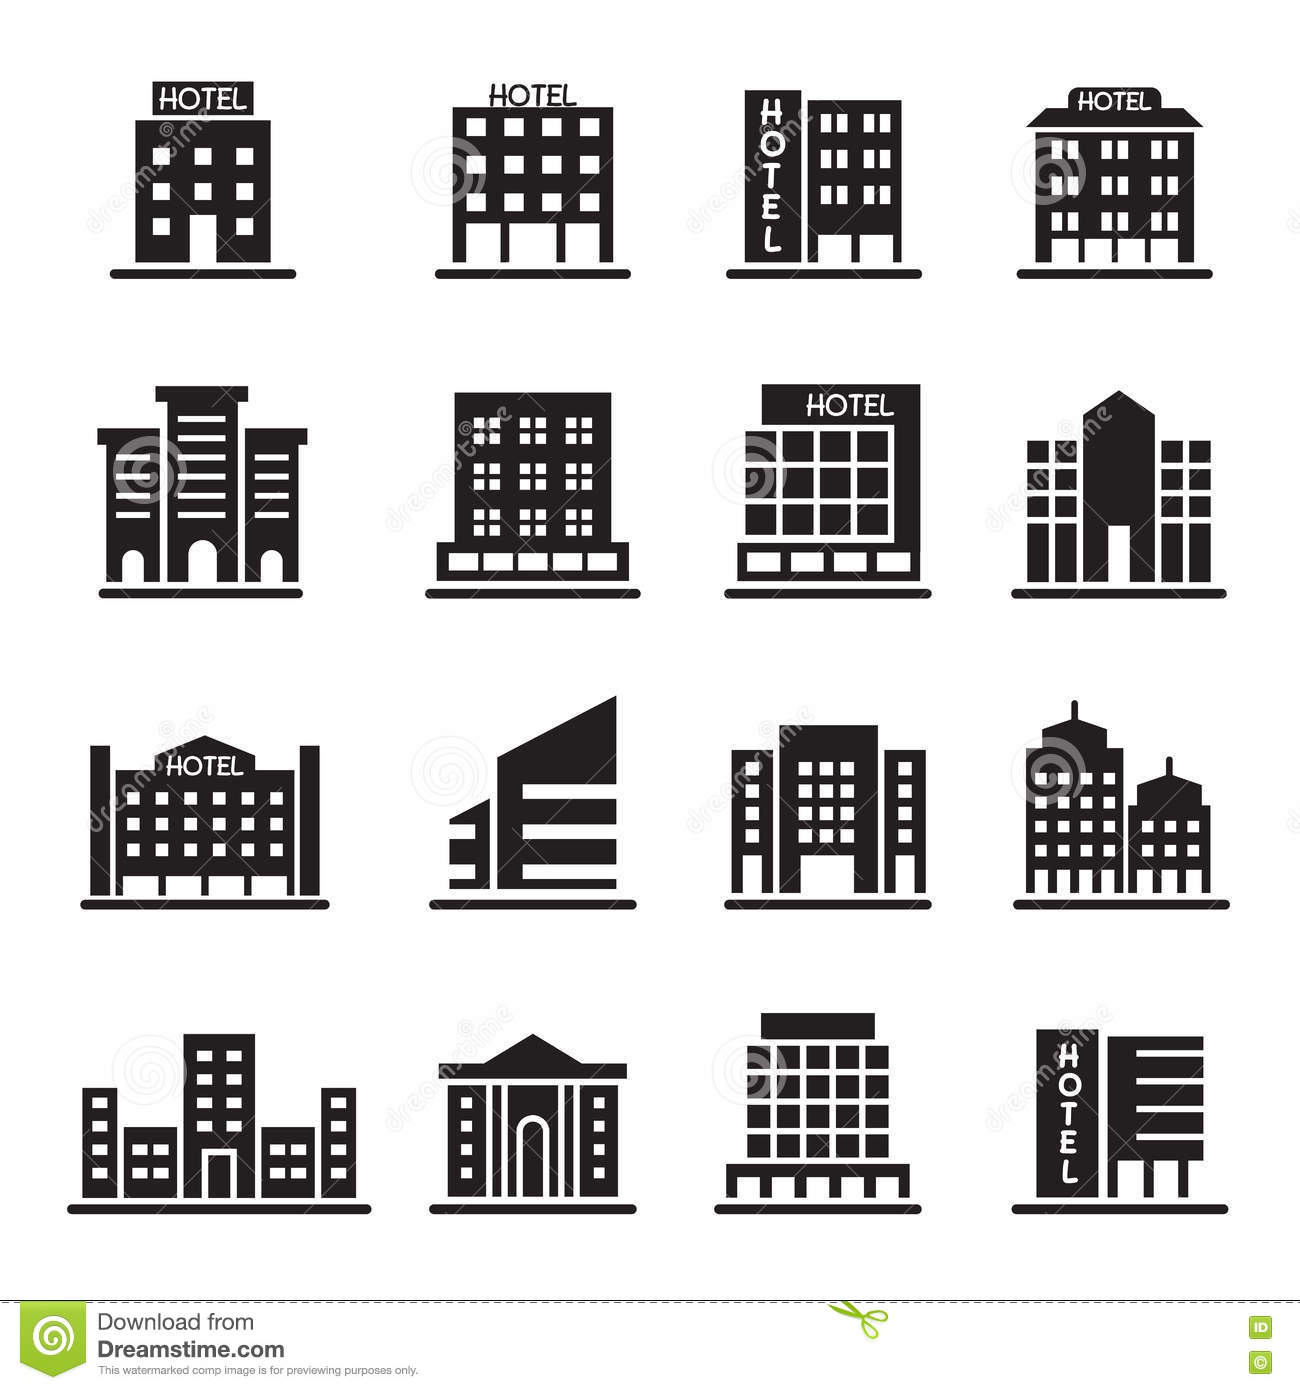 Hotel Building Office Tower Icons Set Illustration